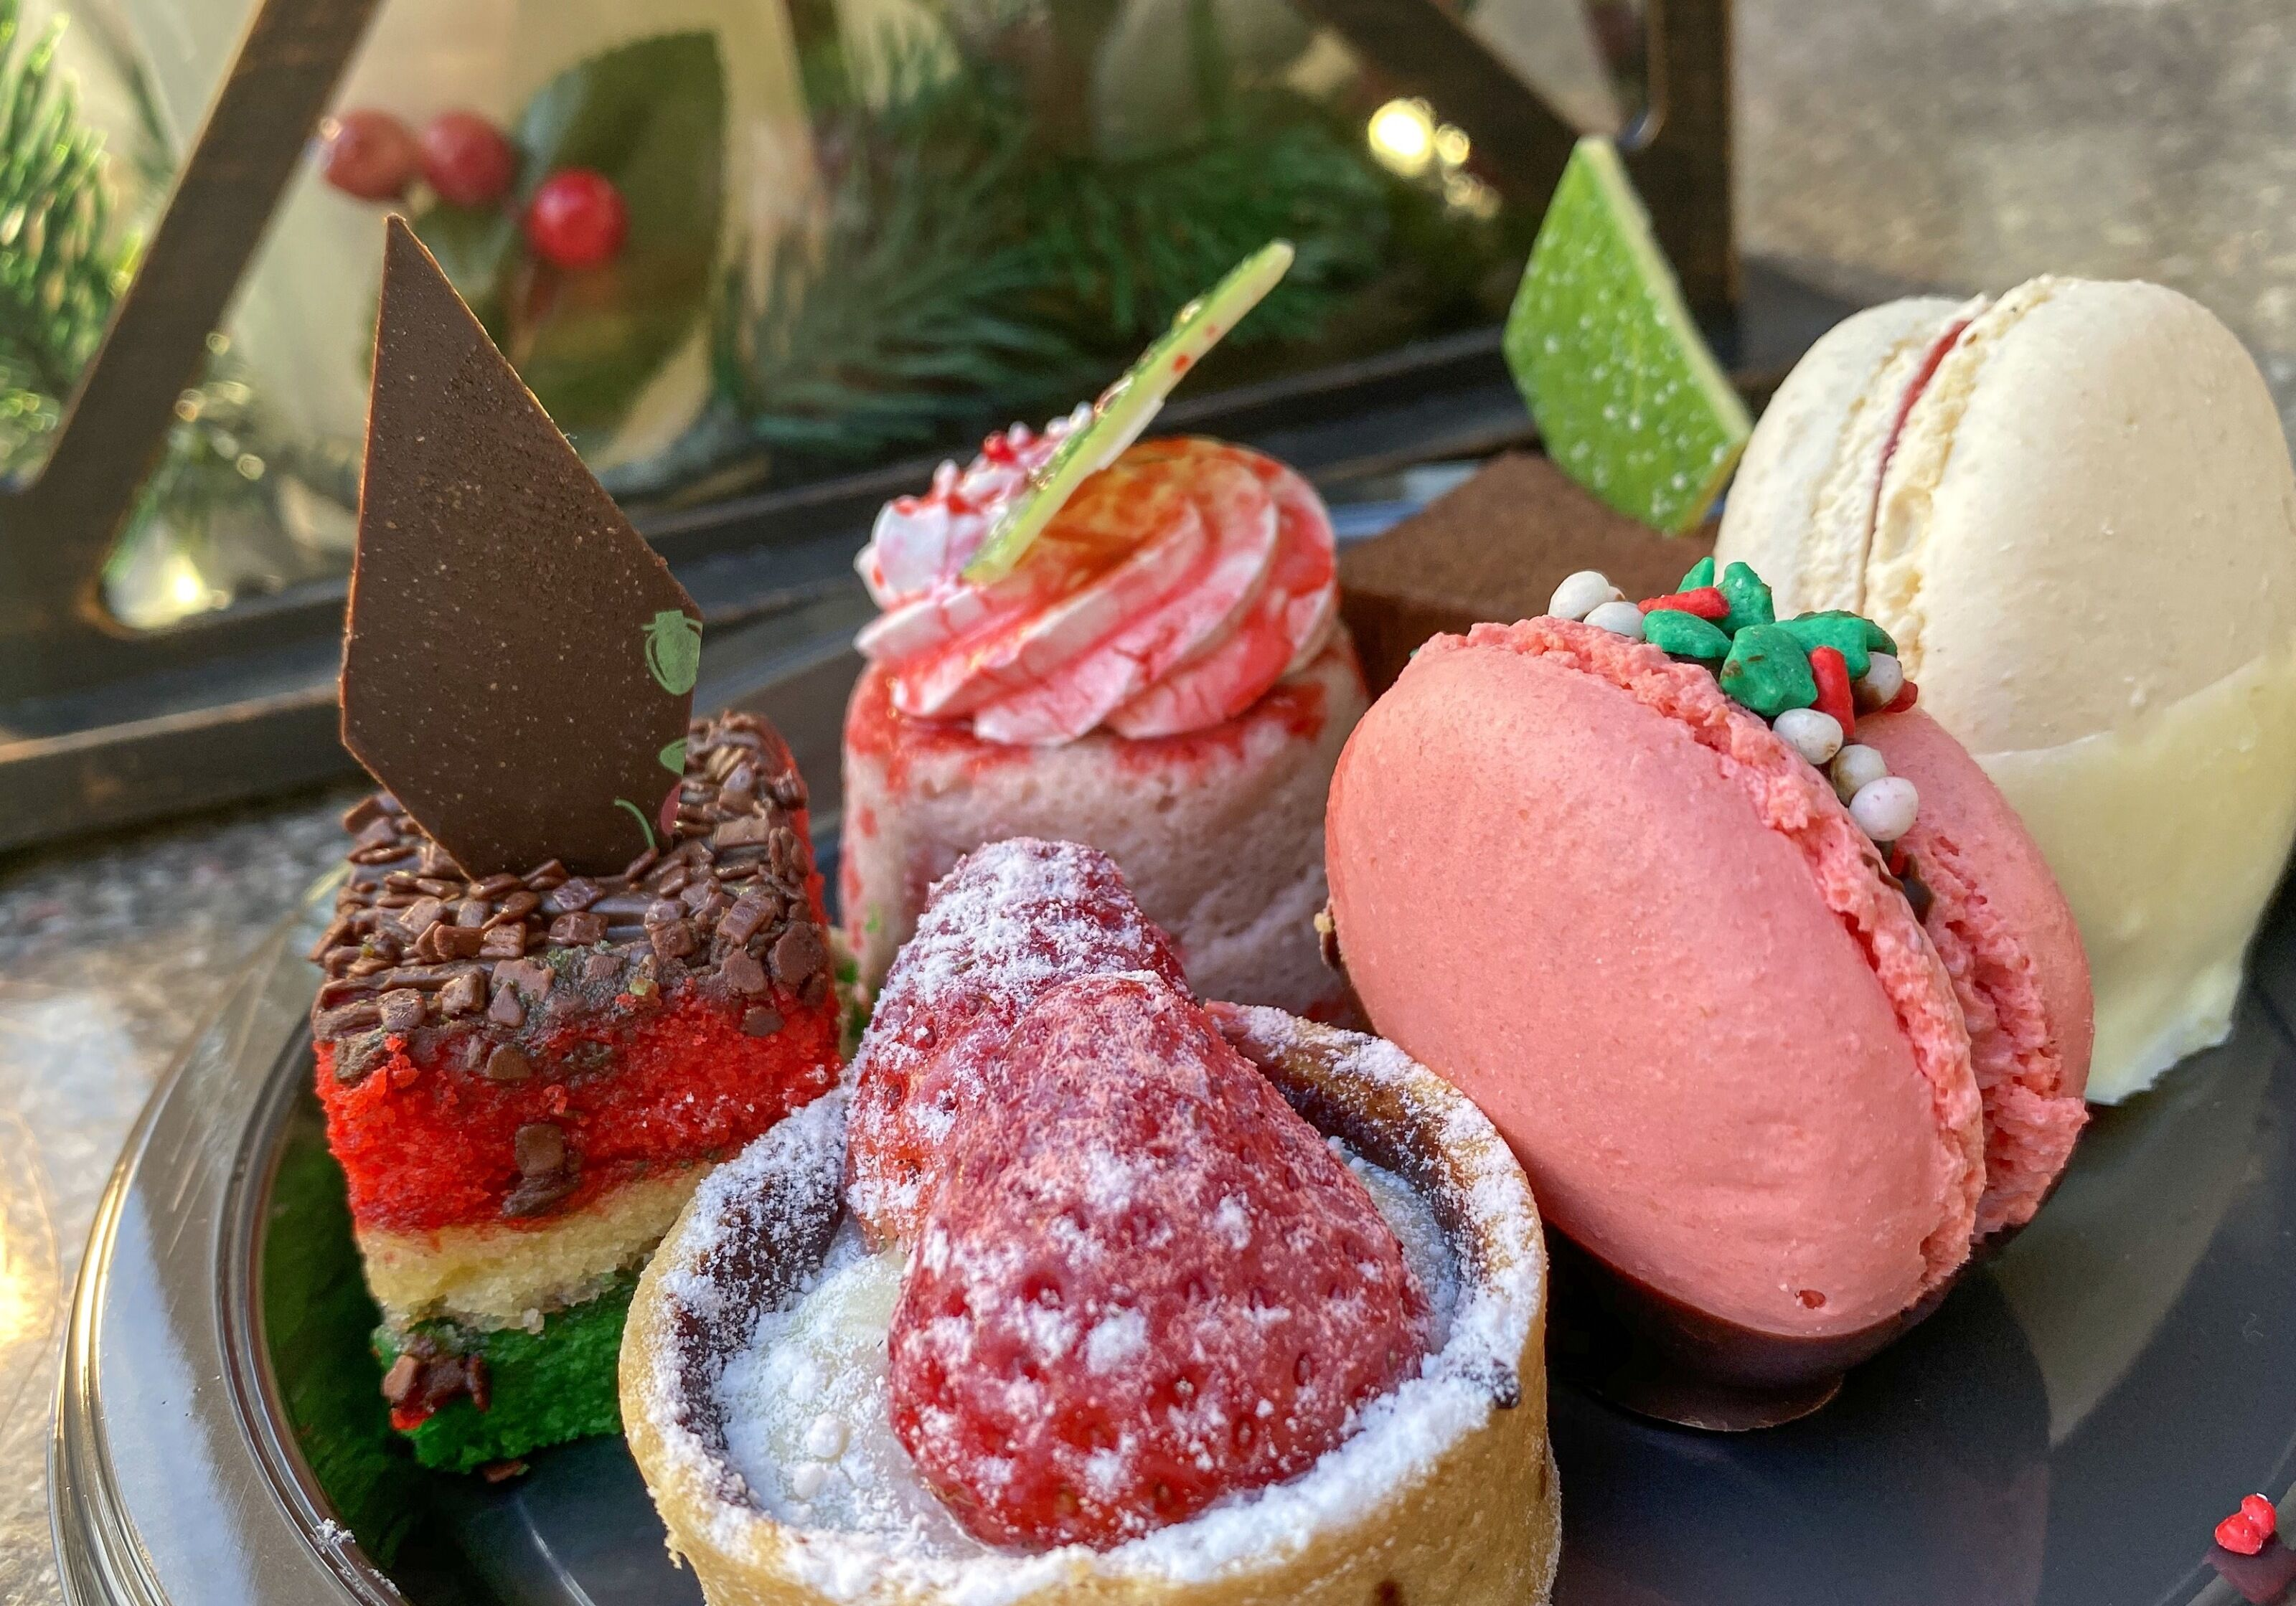 Sweets and Sounds Dessert Party, Universal Orlando brings sweetest merriment